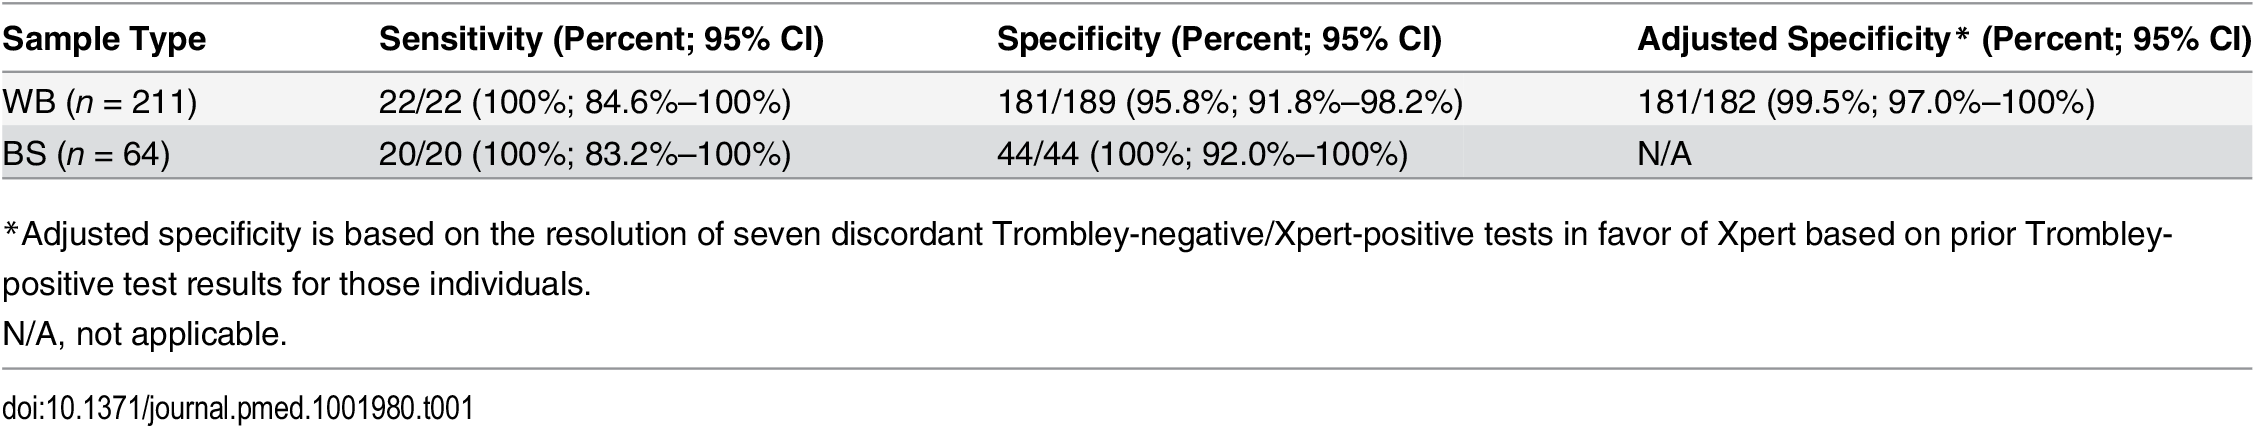 Sensitivity and specificity of the Xpert Ebola assay versus the Trombley assay performed on clinical whole blood and buccal swab samples.